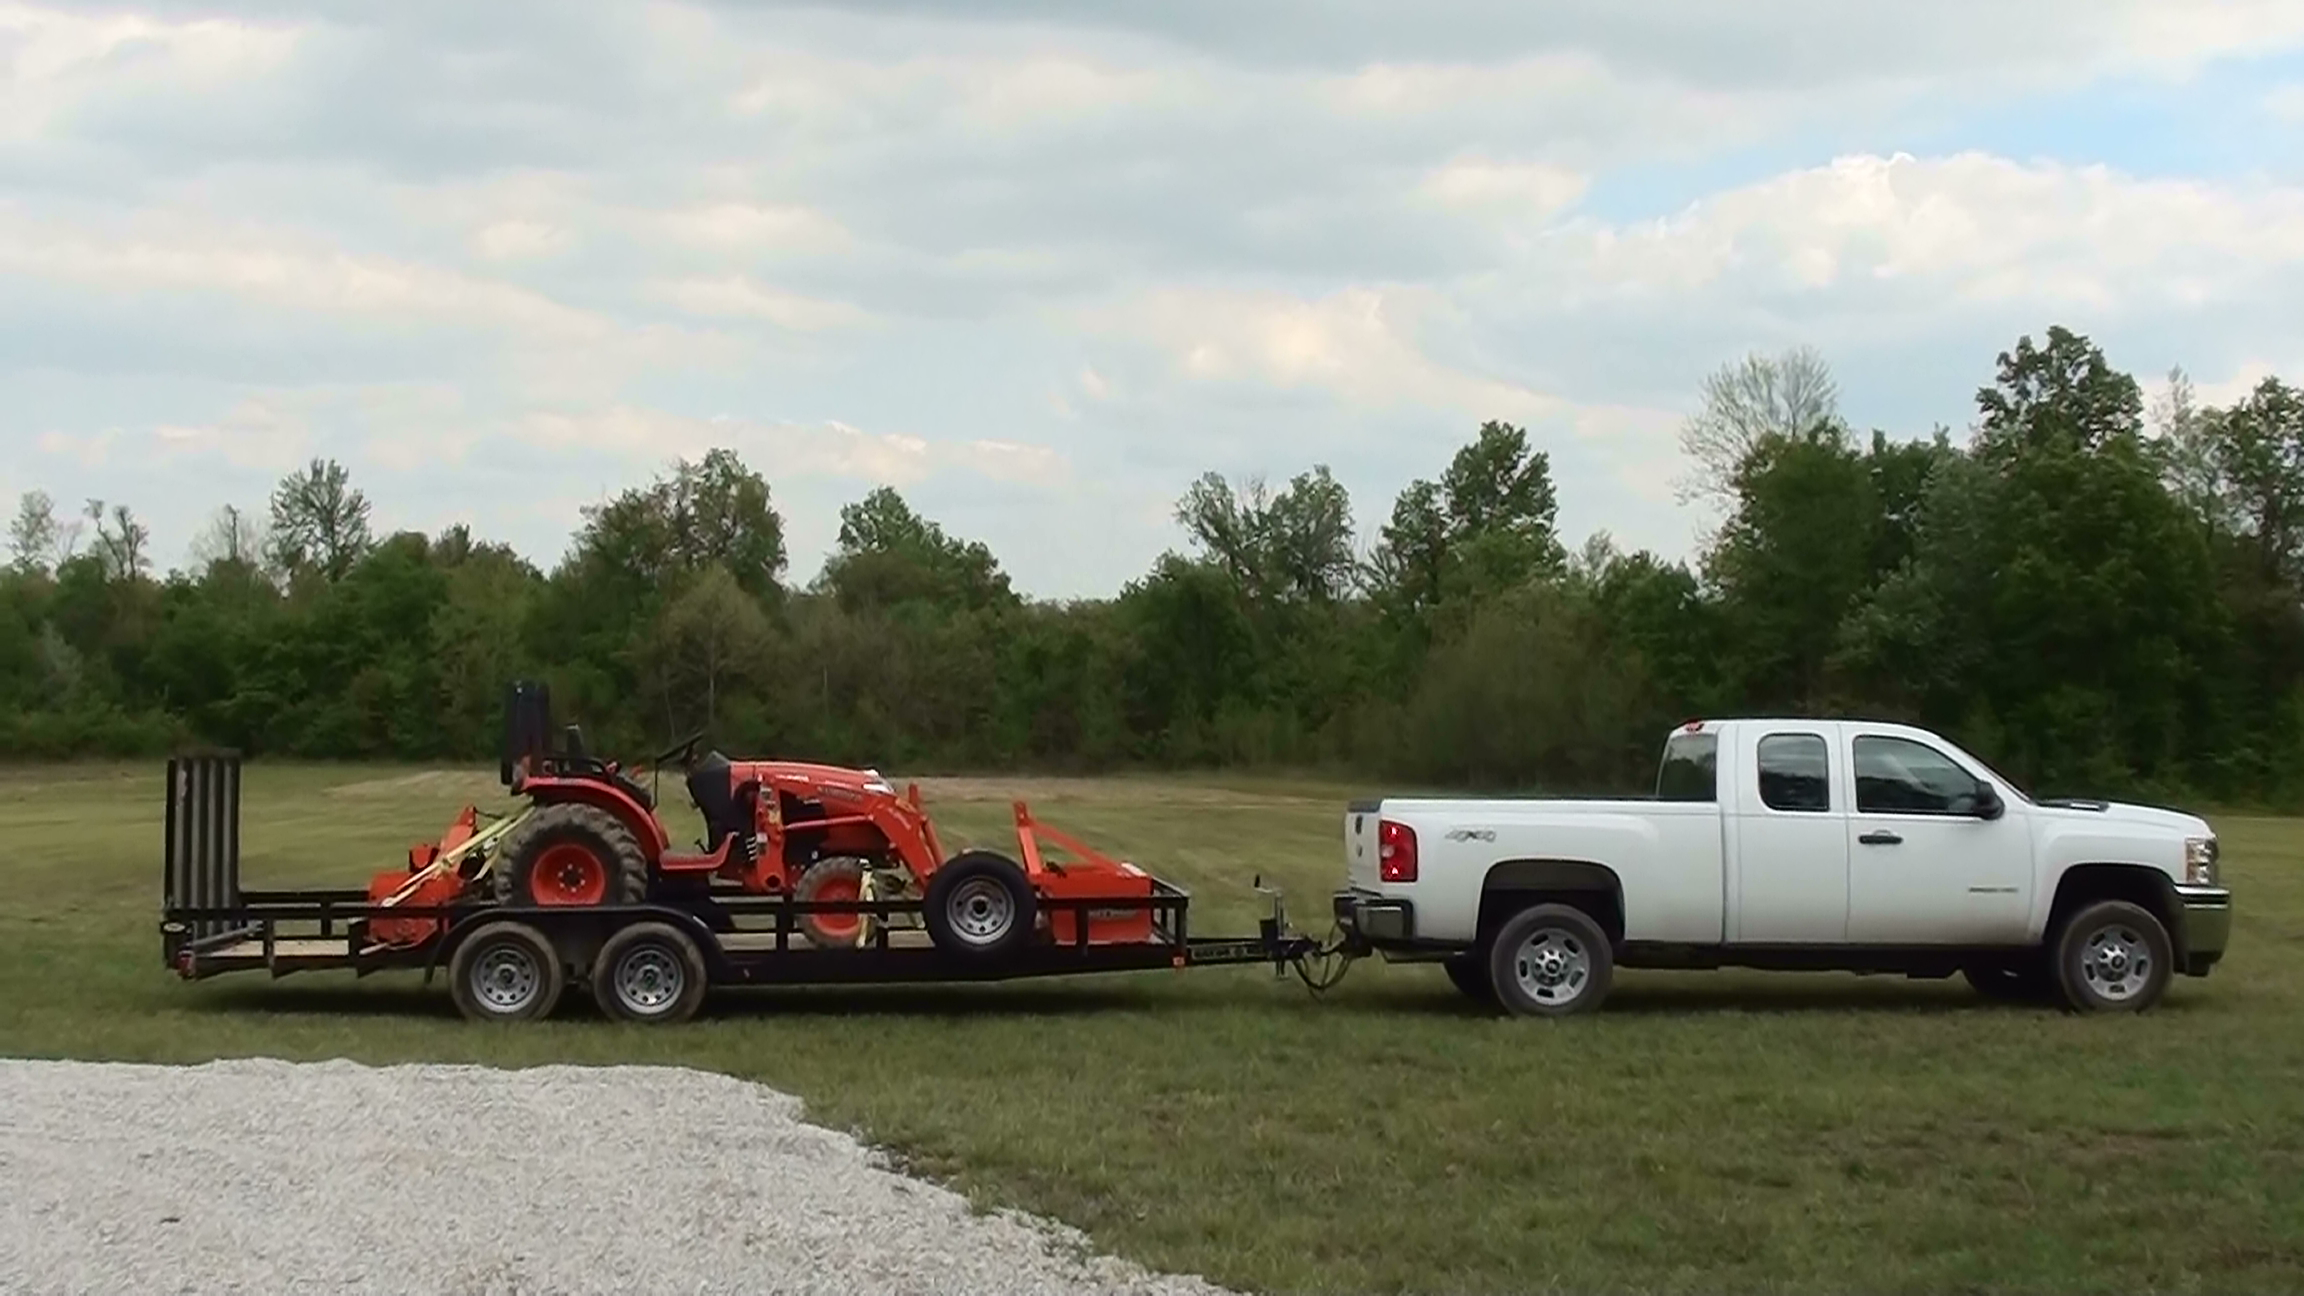 Indiana Tractor Services